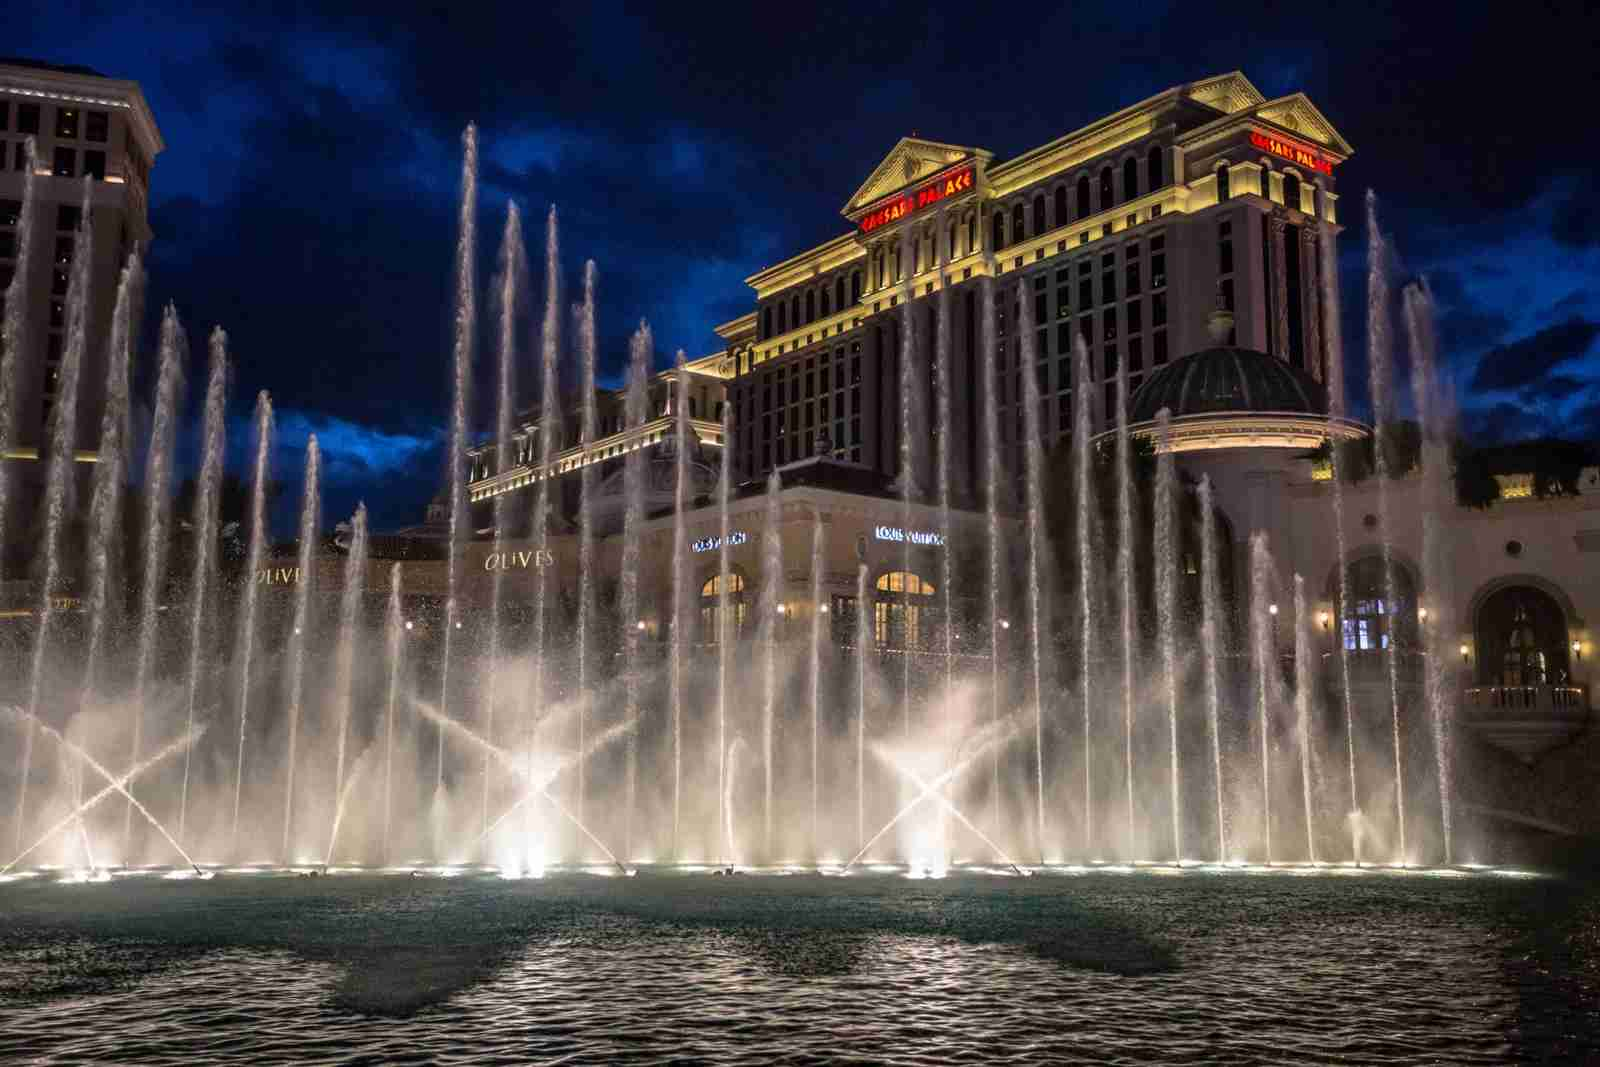 Caesars Palace. (Photo by Evan Semones - cosmophotograhy/Getty Images